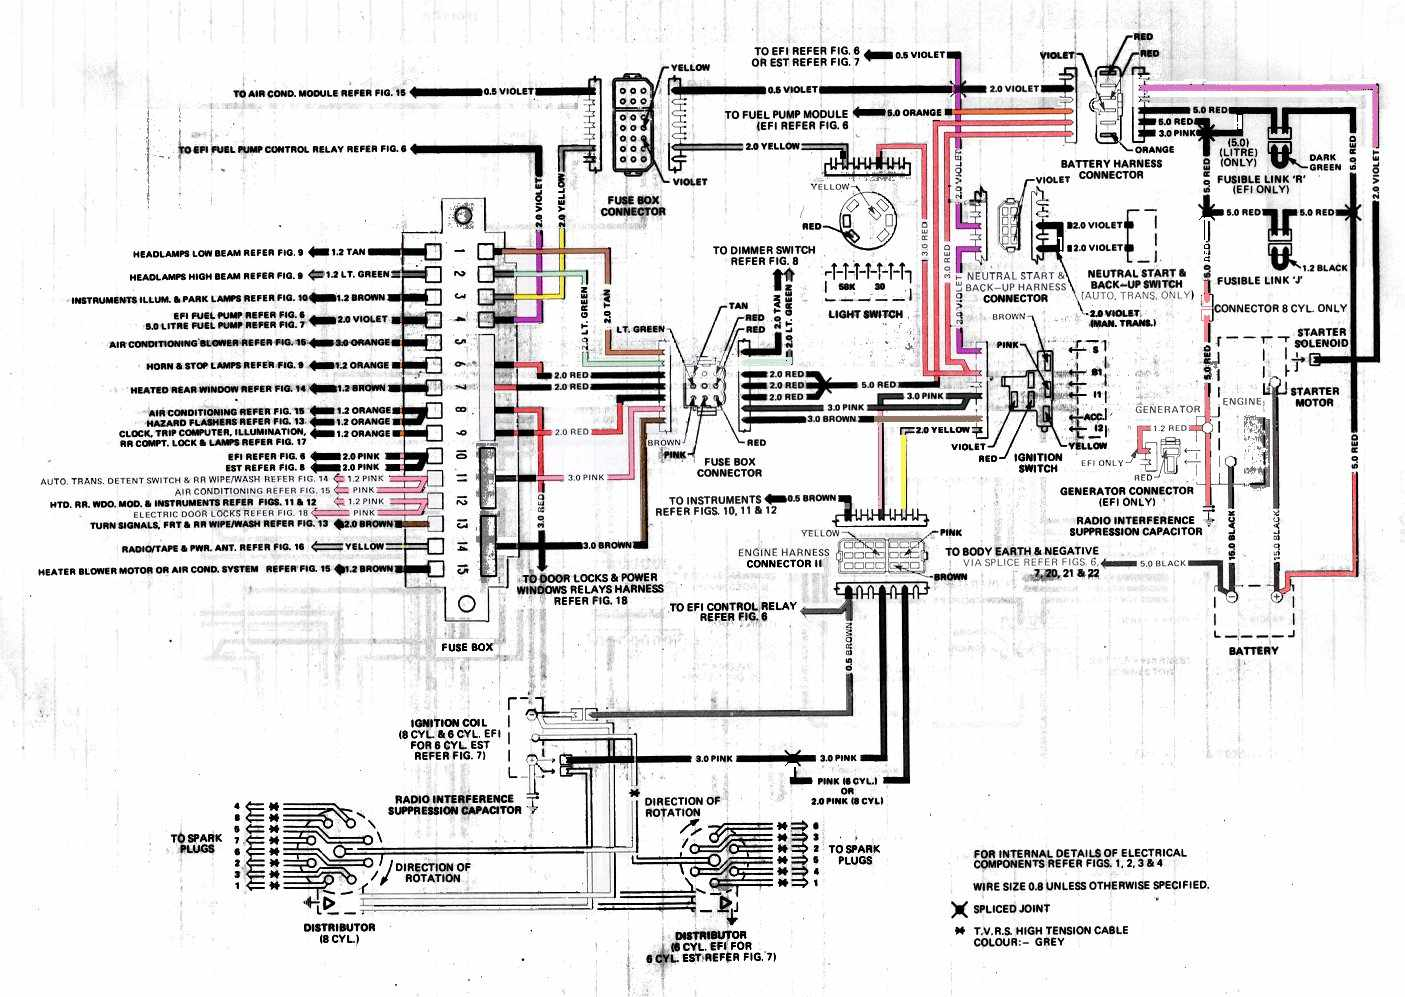 Holden+VK+Commodore+Generator+Electrical+Wiring+Diagram wiring diagrams maker readingrat net wiring diagram tool at soozxer.org